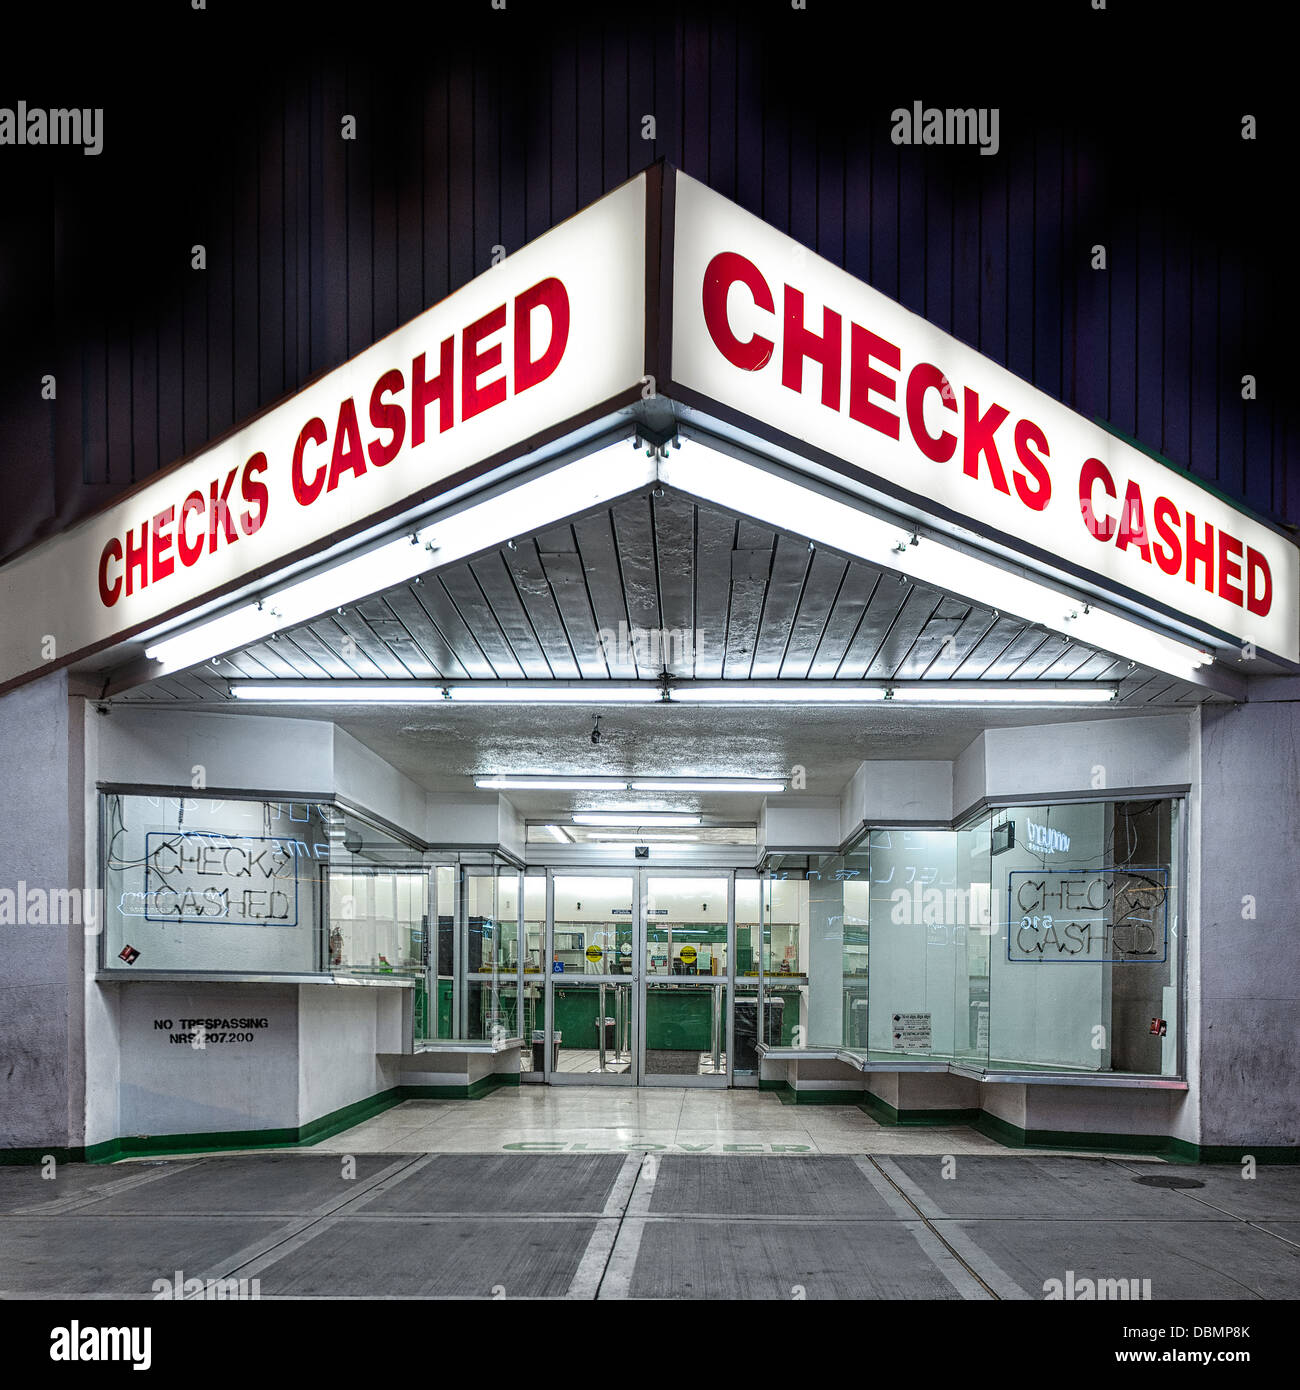 Check Cashing Stock Photos & Check Cashing Stock Images - Alamy